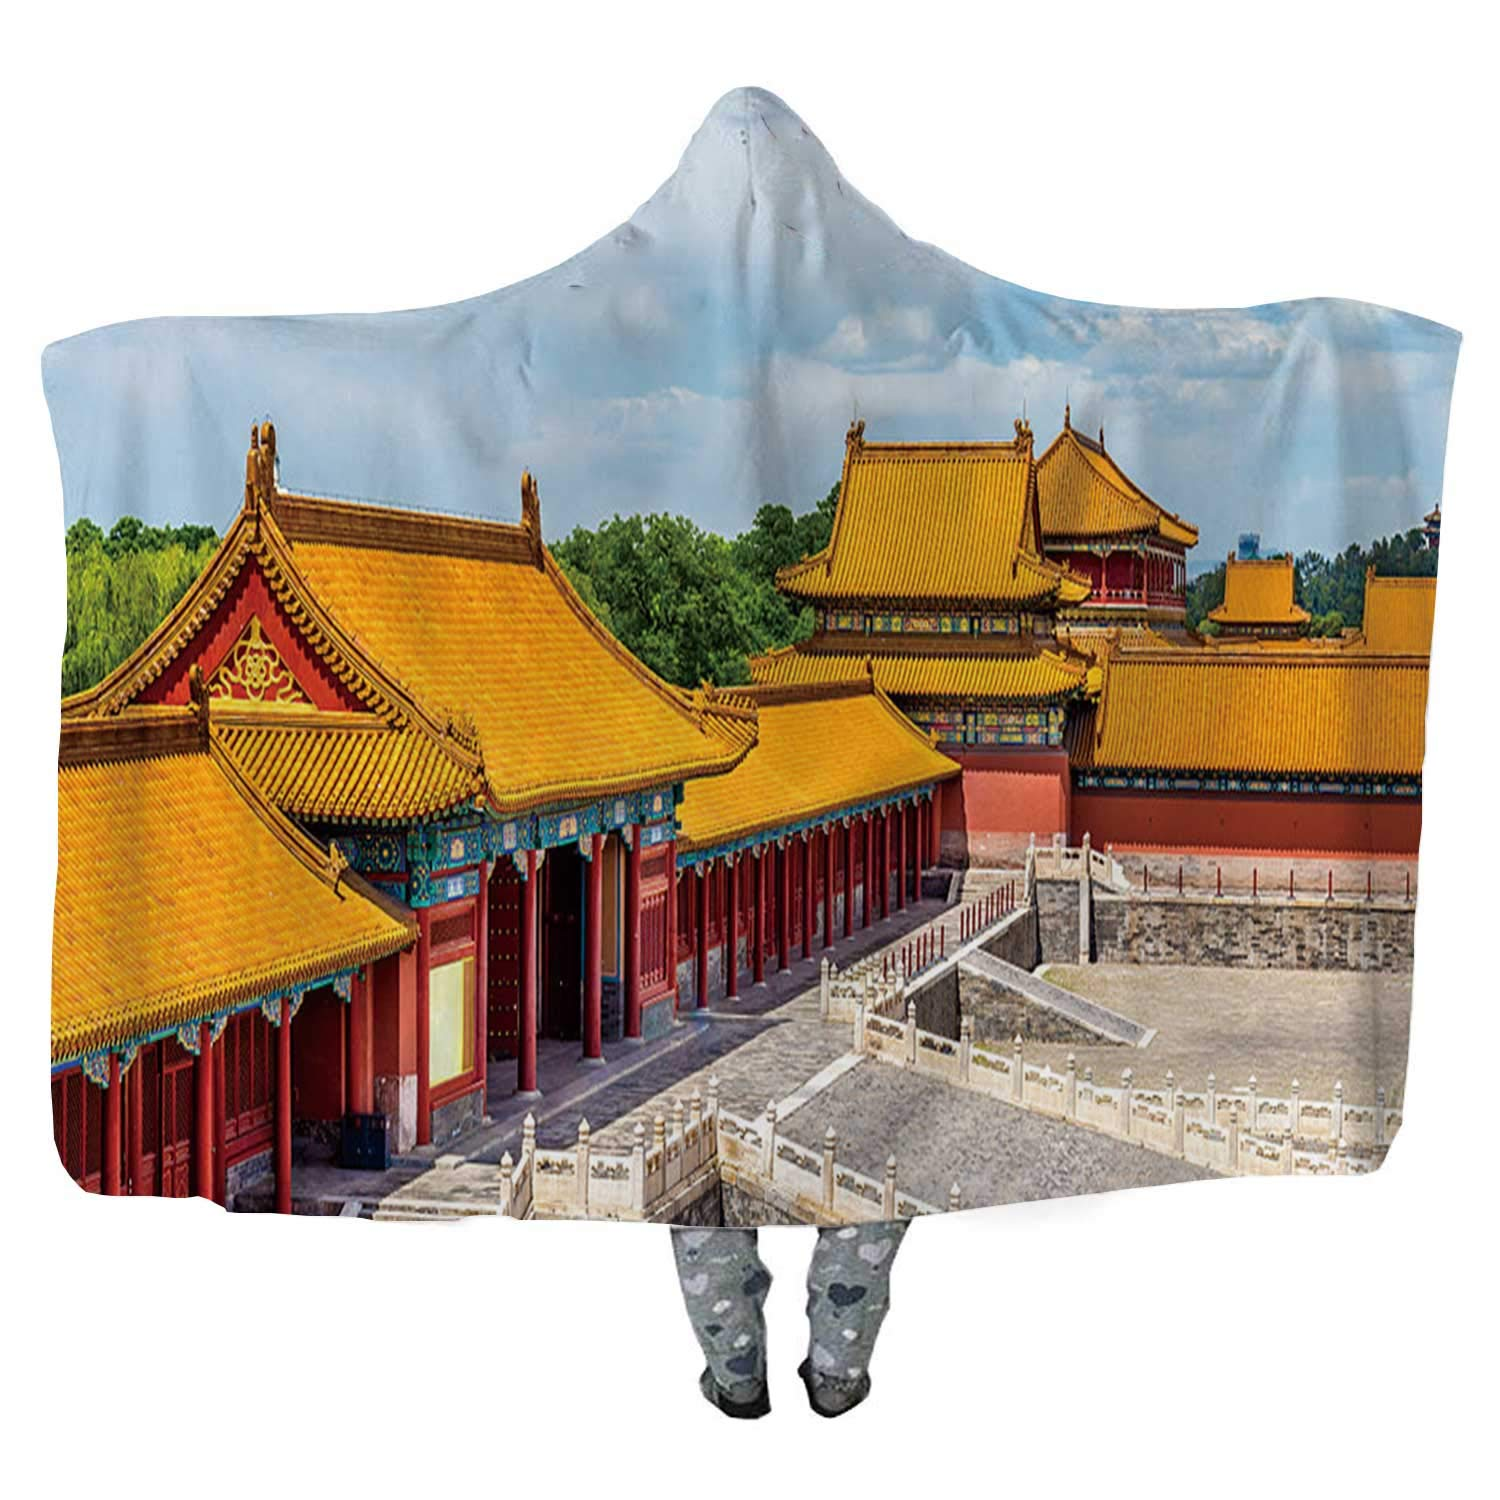 View of The Forbidden City or Palace Museum Beijing Wearable Blanket,Microfiber Fleece Soft Warm Winter Novelty Wearable Blanket,052624,60''W x 50''H